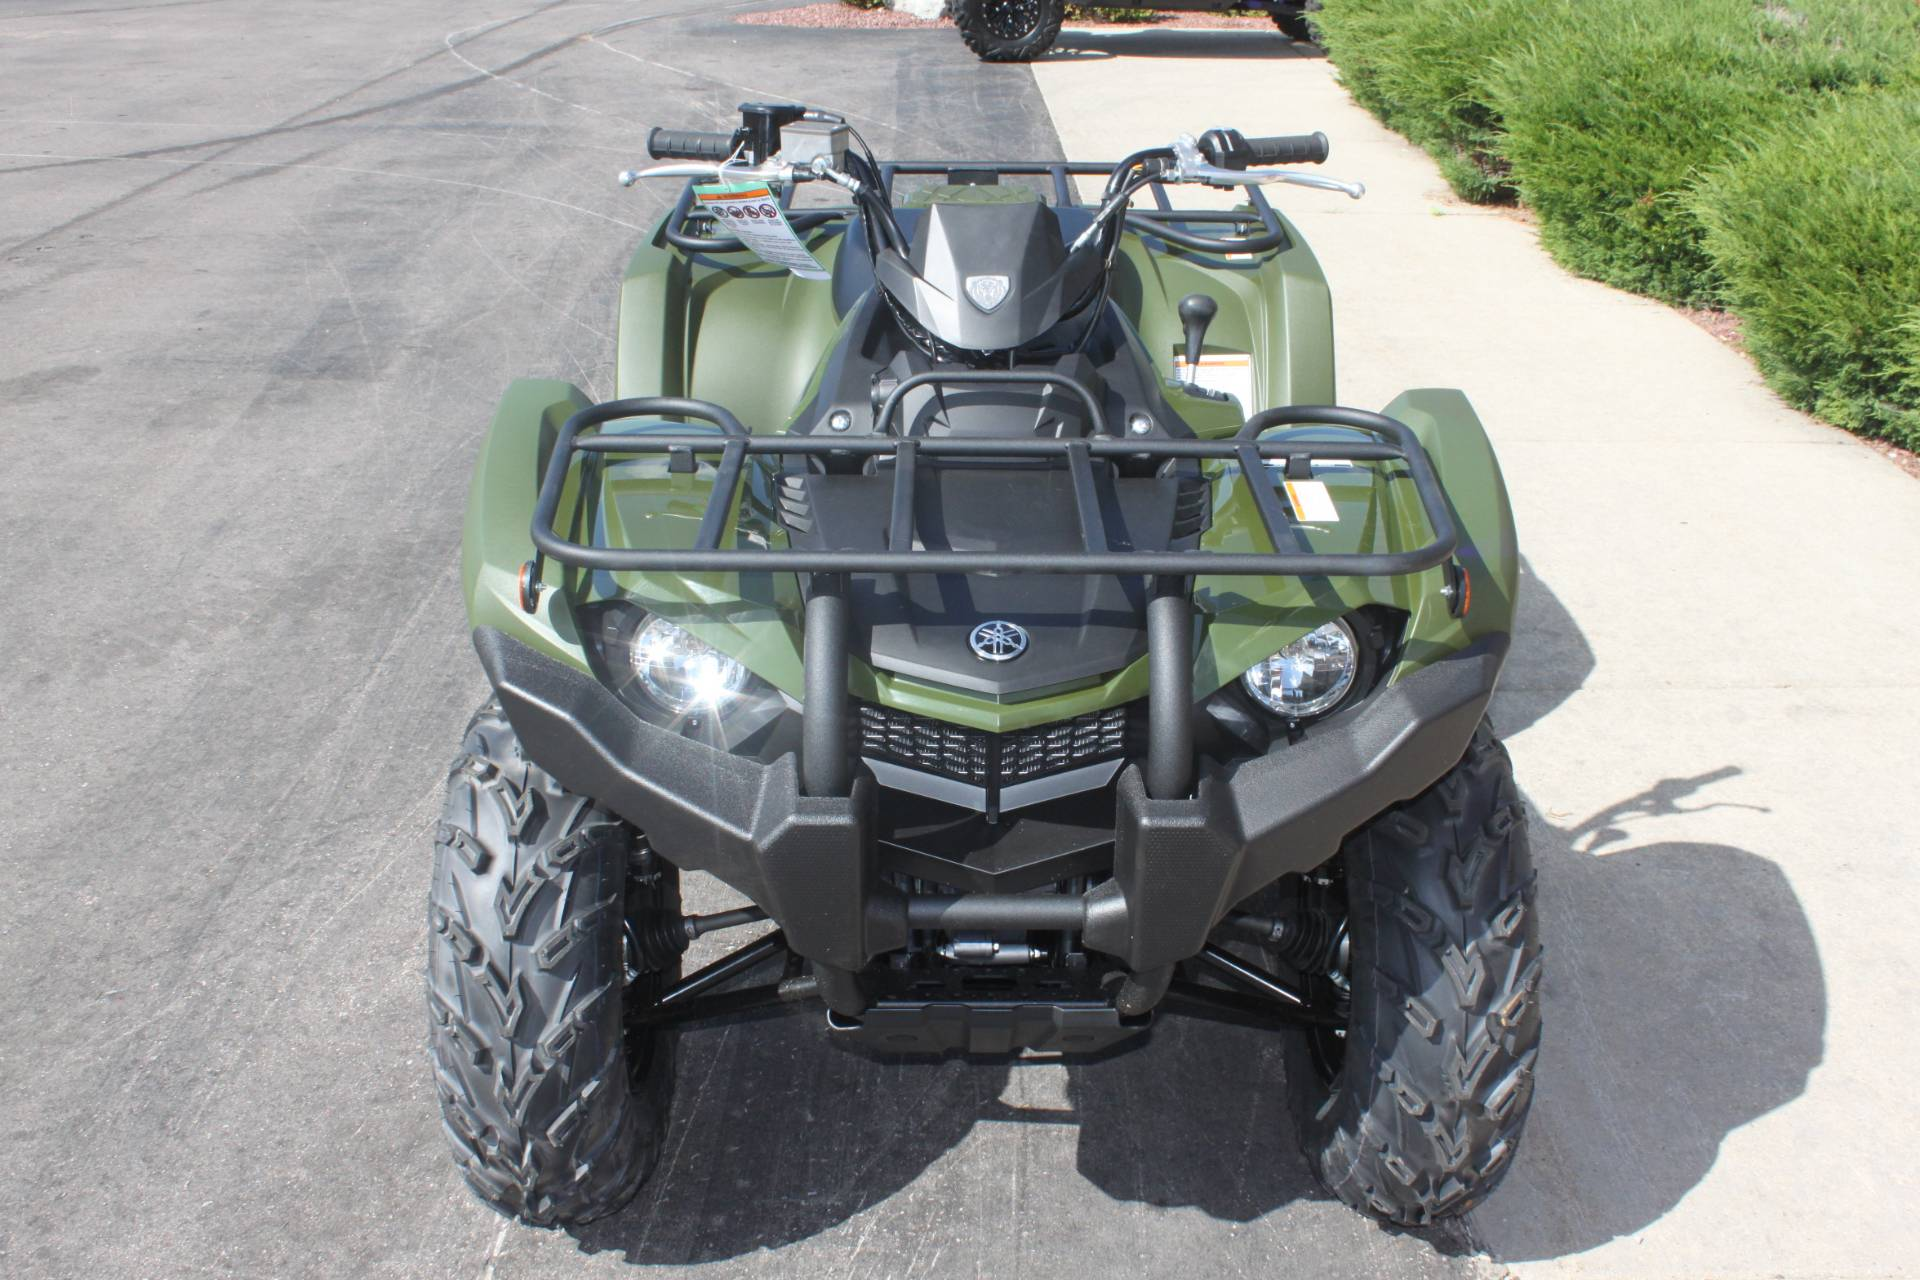 2020 Yamaha Kodiak 450 in Janesville, Wisconsin - Photo 16